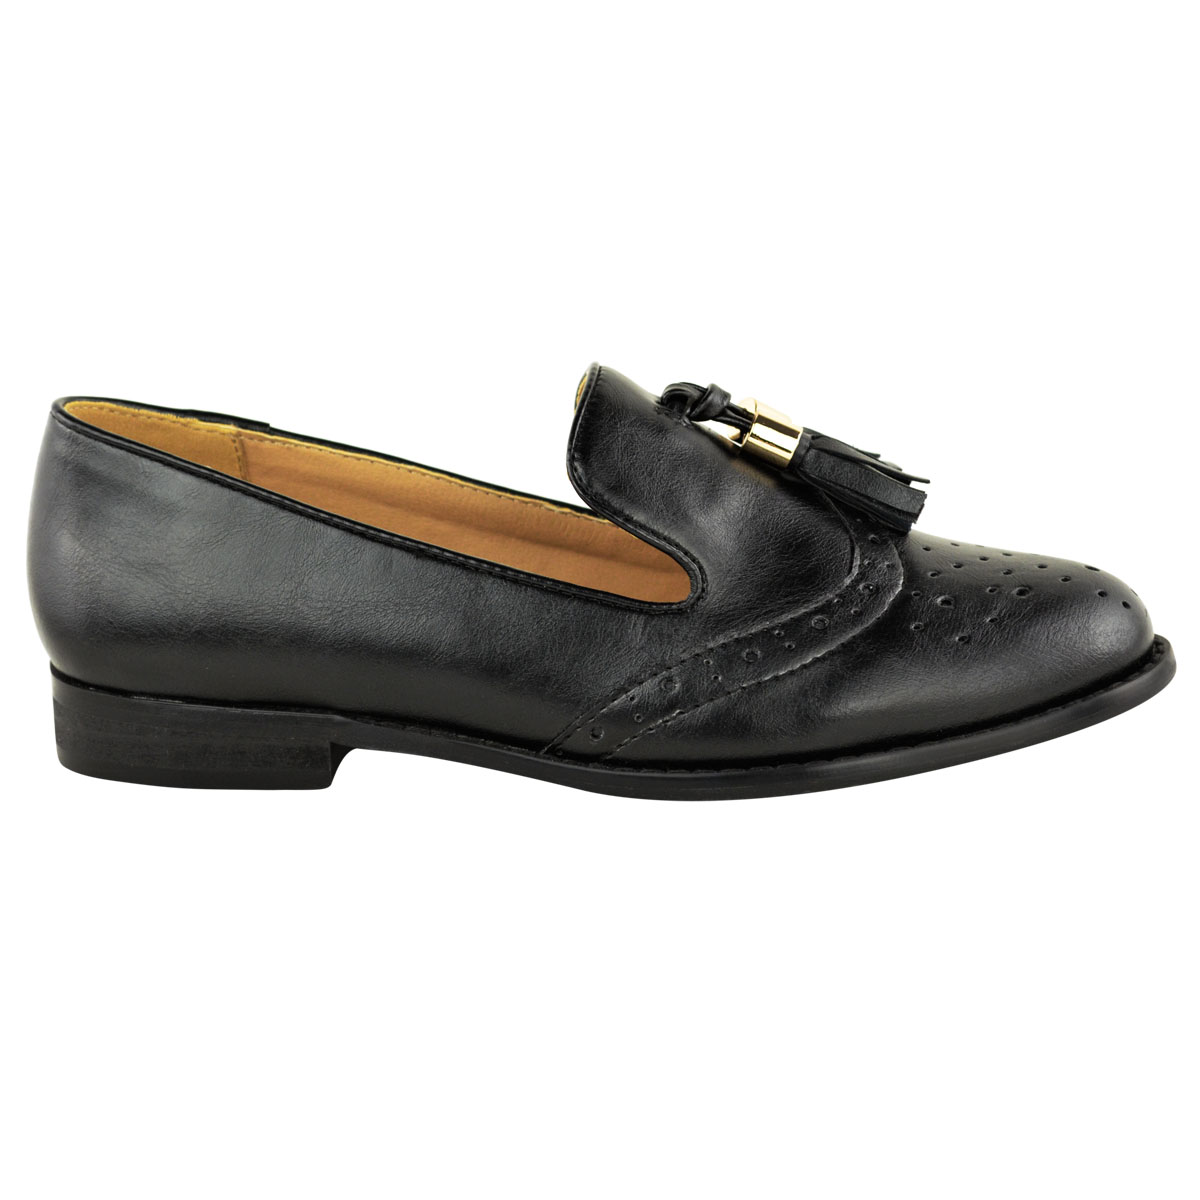 Women's Loafers: Free Shipping on orders over $45 at Find the latest styles of Shoes from funon.ml Your Online Women's Shoes Store! Get 5% in rewards with Club O!